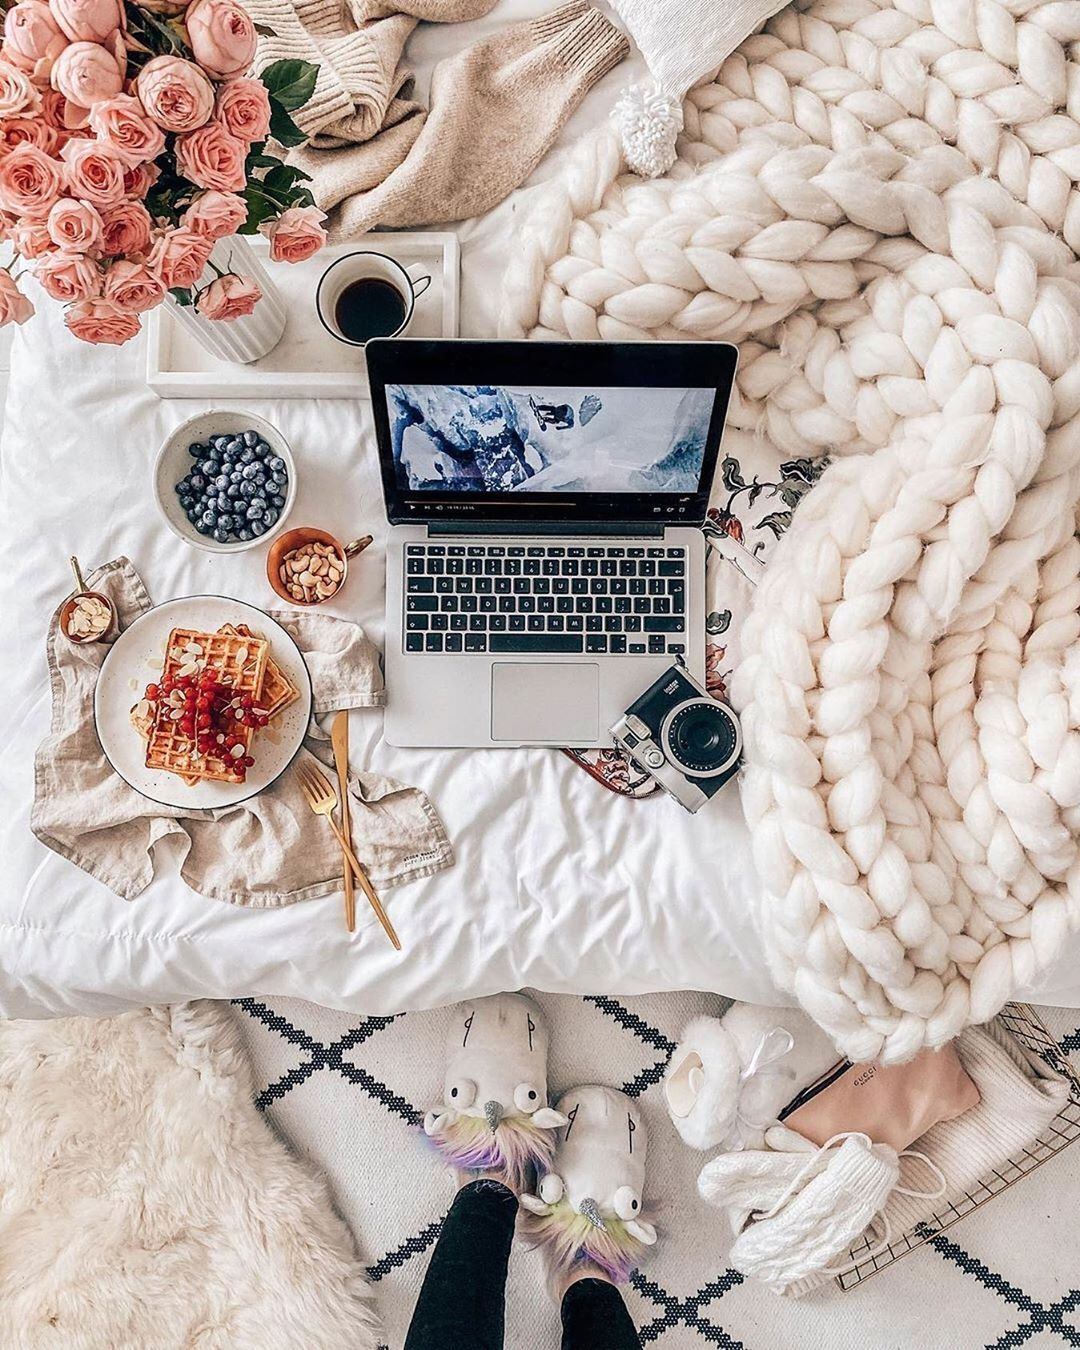 What is the best movie you watched recently?💻 @alabasterfox